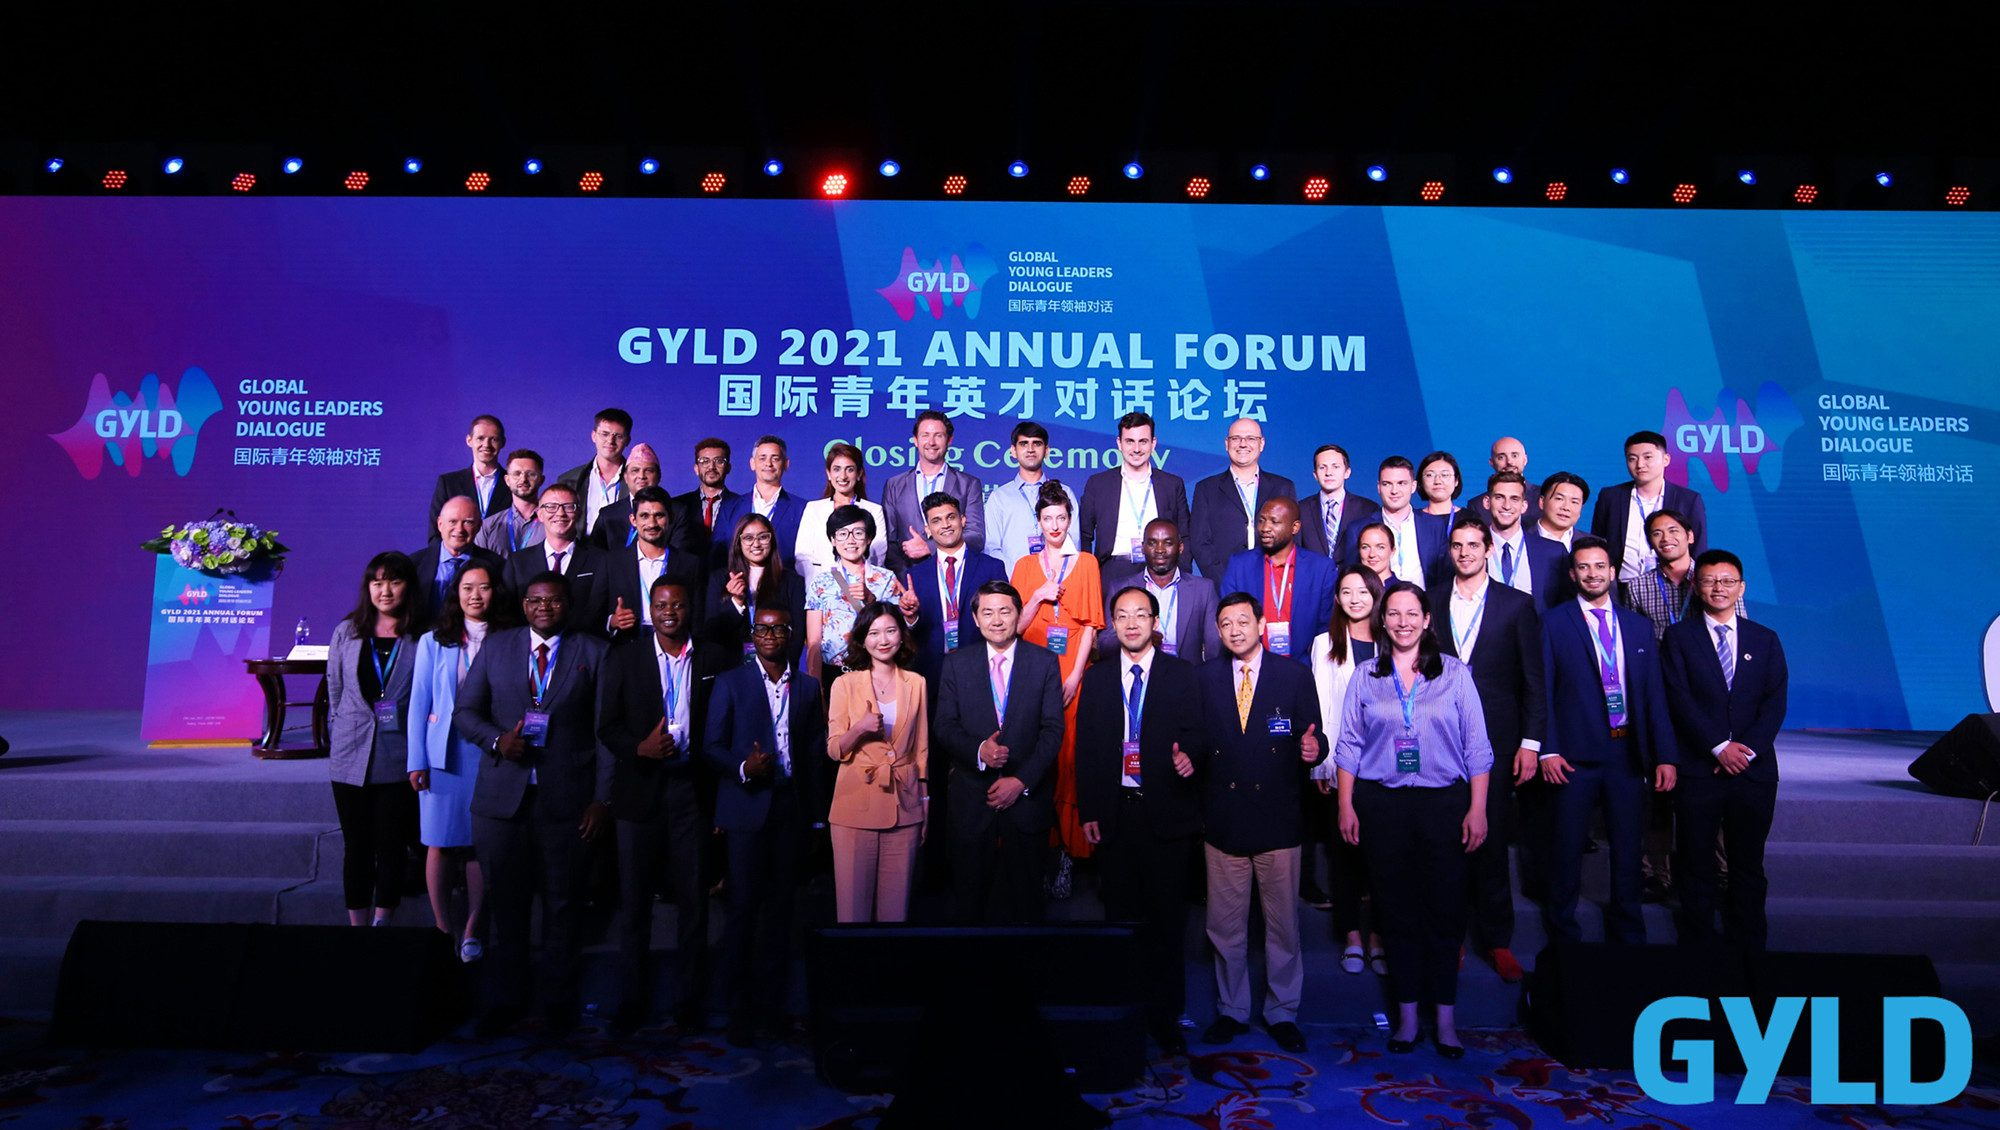 Welcome to GYLD 2021 Annual Forum